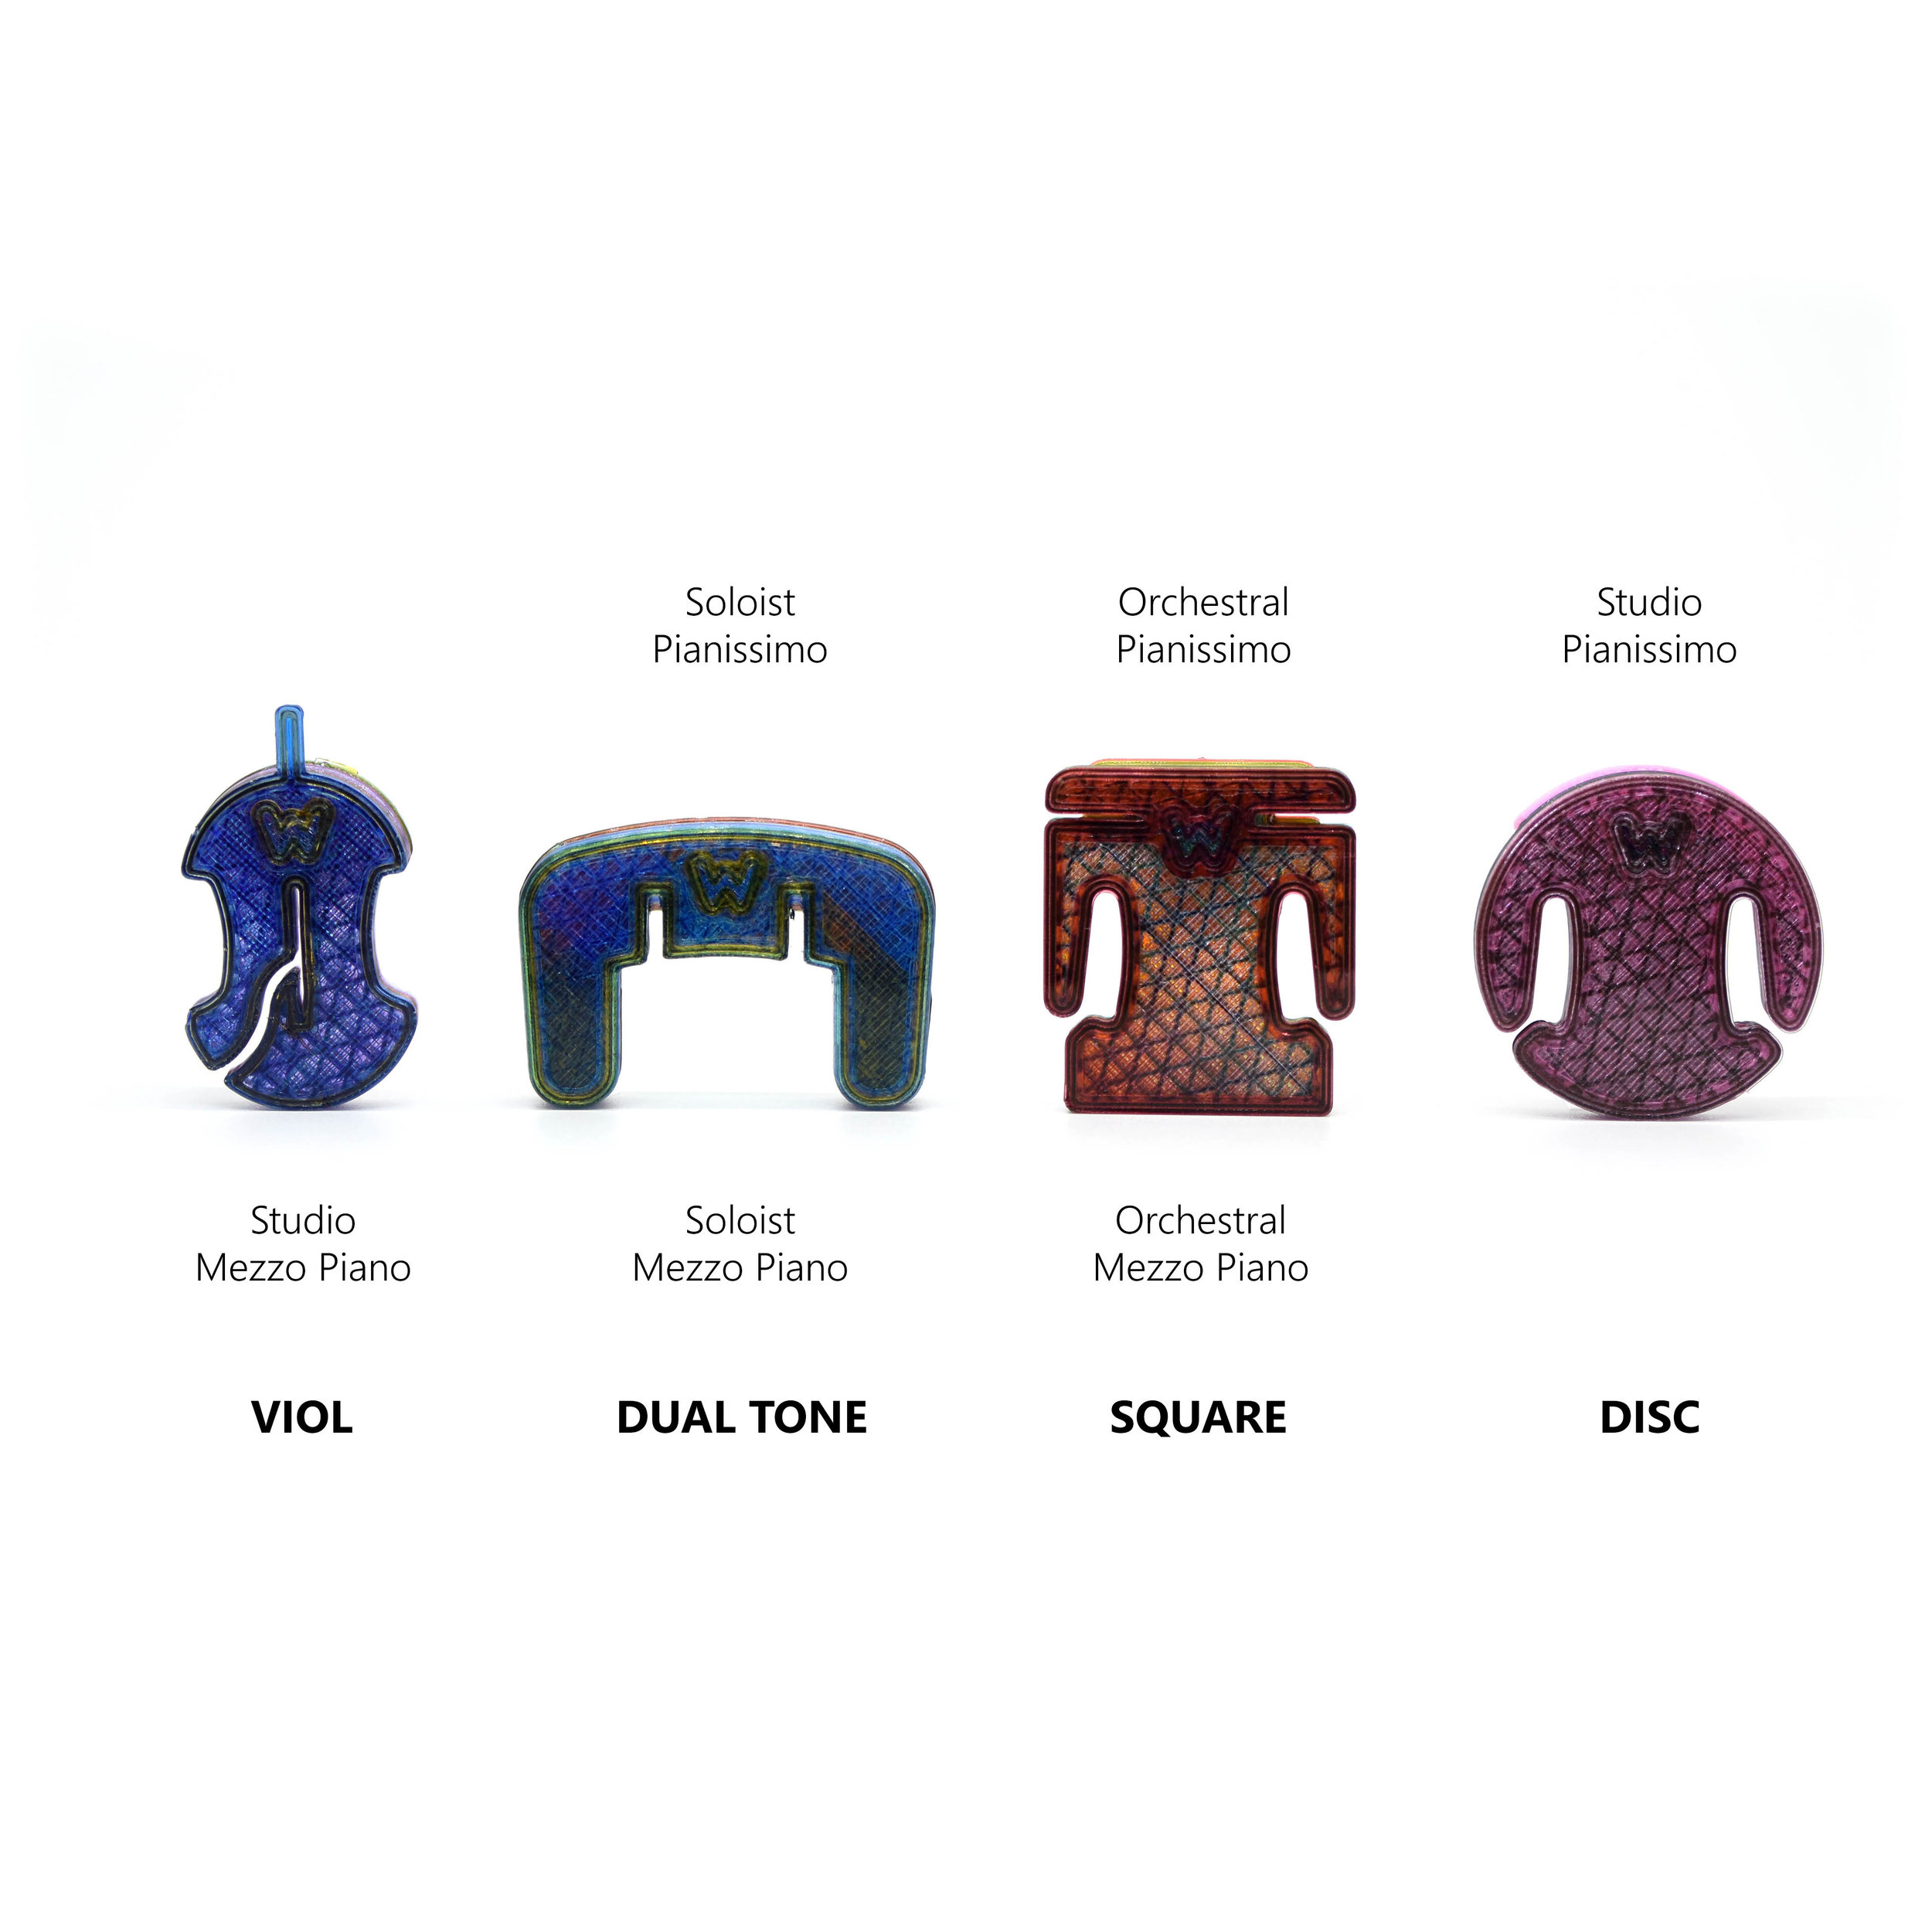 *Start by choosing one or more base models for customization. Specify up to  6 colors  to be blended into your custom batch of mutes. 1-2 initials may be 3D-printed into the mute or a simple insignia. Some technical limitations apply. Acoustic effect and mute physical shape may be modified for an additional fee. All autograph mute sales are final.